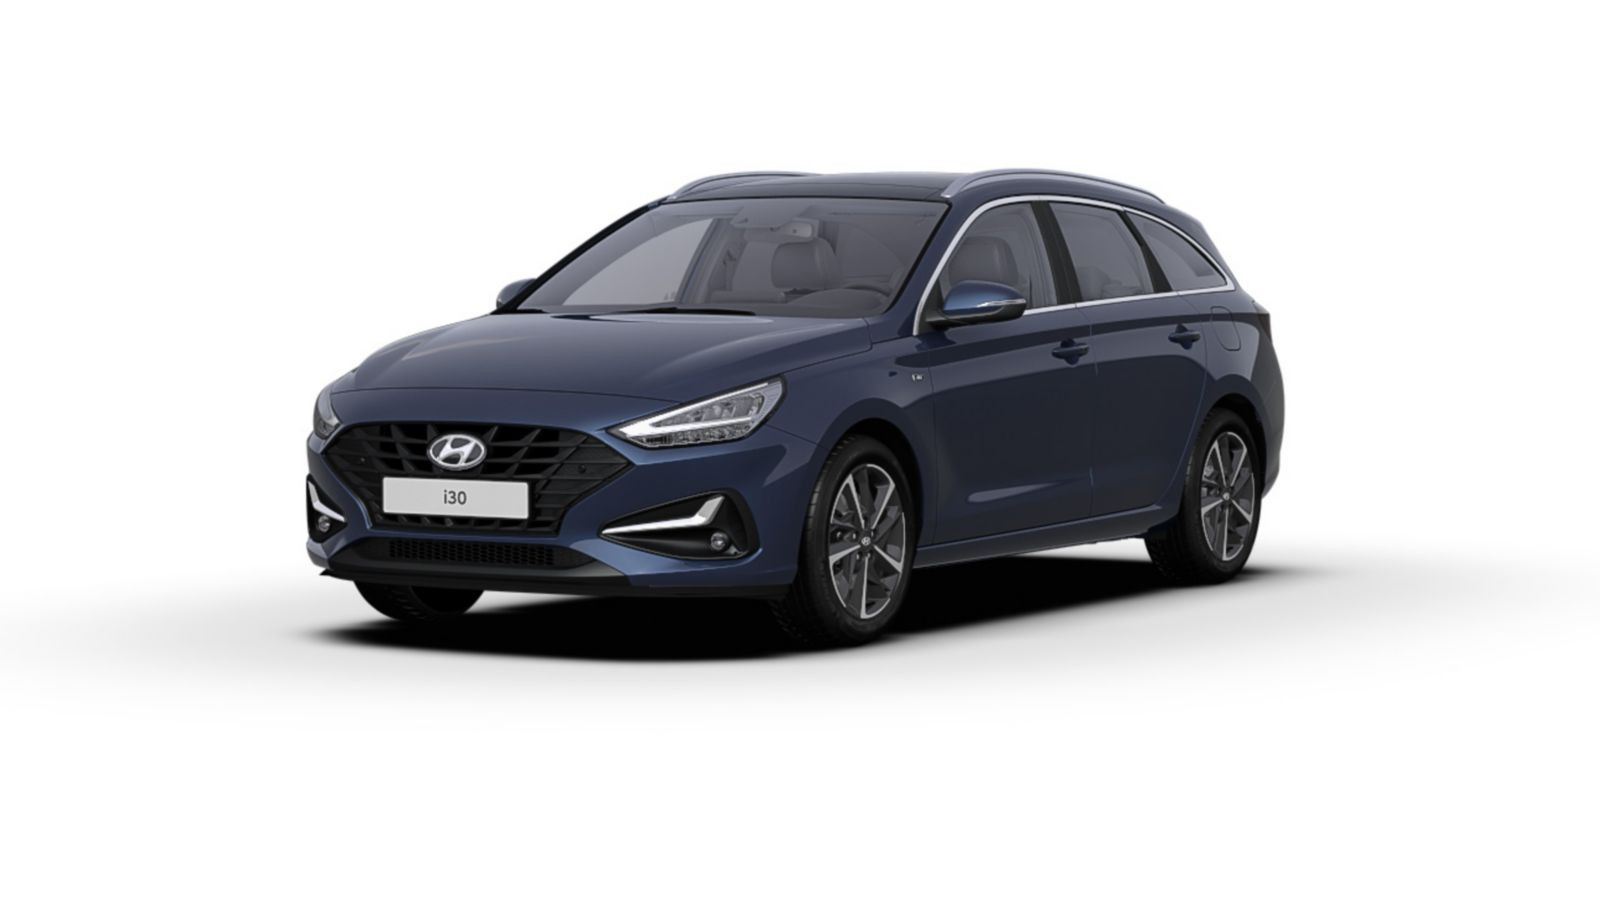 Front side view of the new Hyundai i30 Wagon in the colour Stellar Blue.